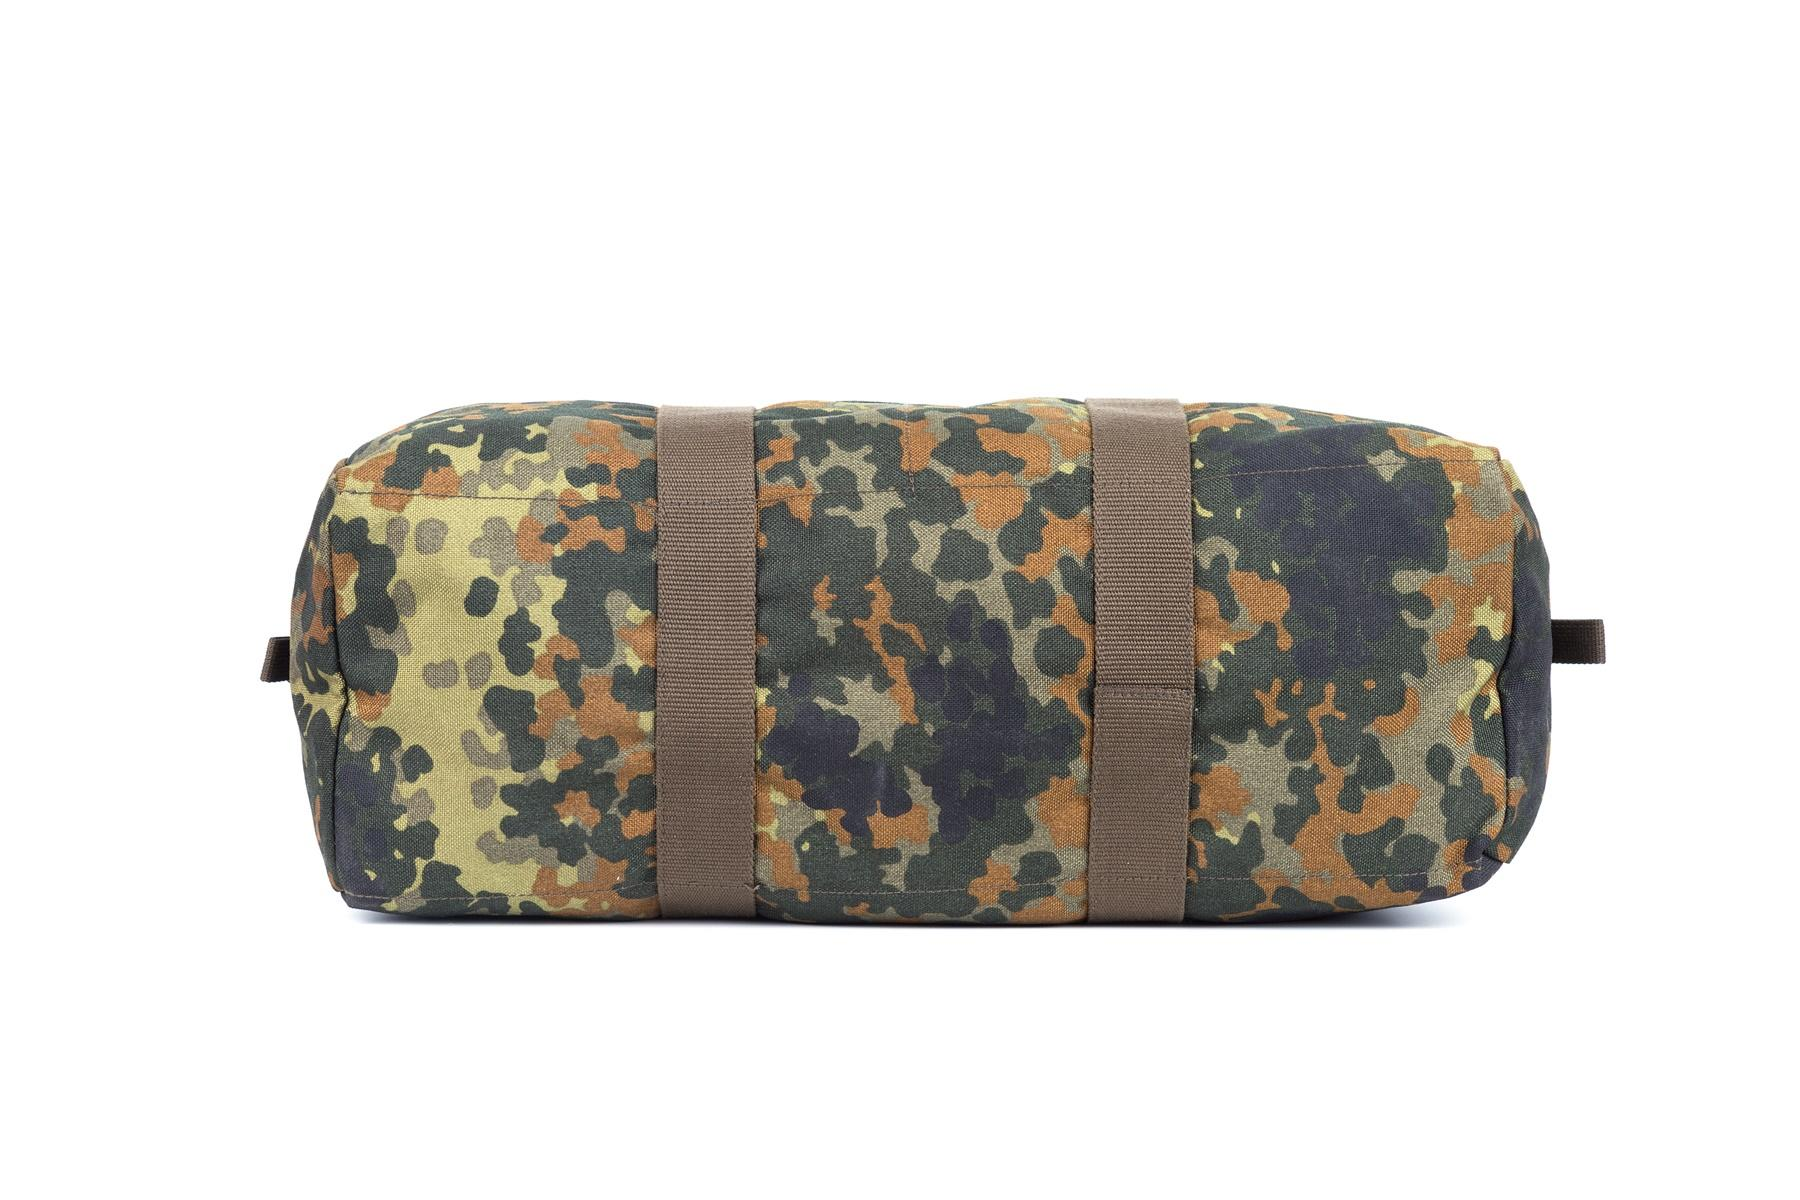 Military travel bag nylon fabric zipper closure